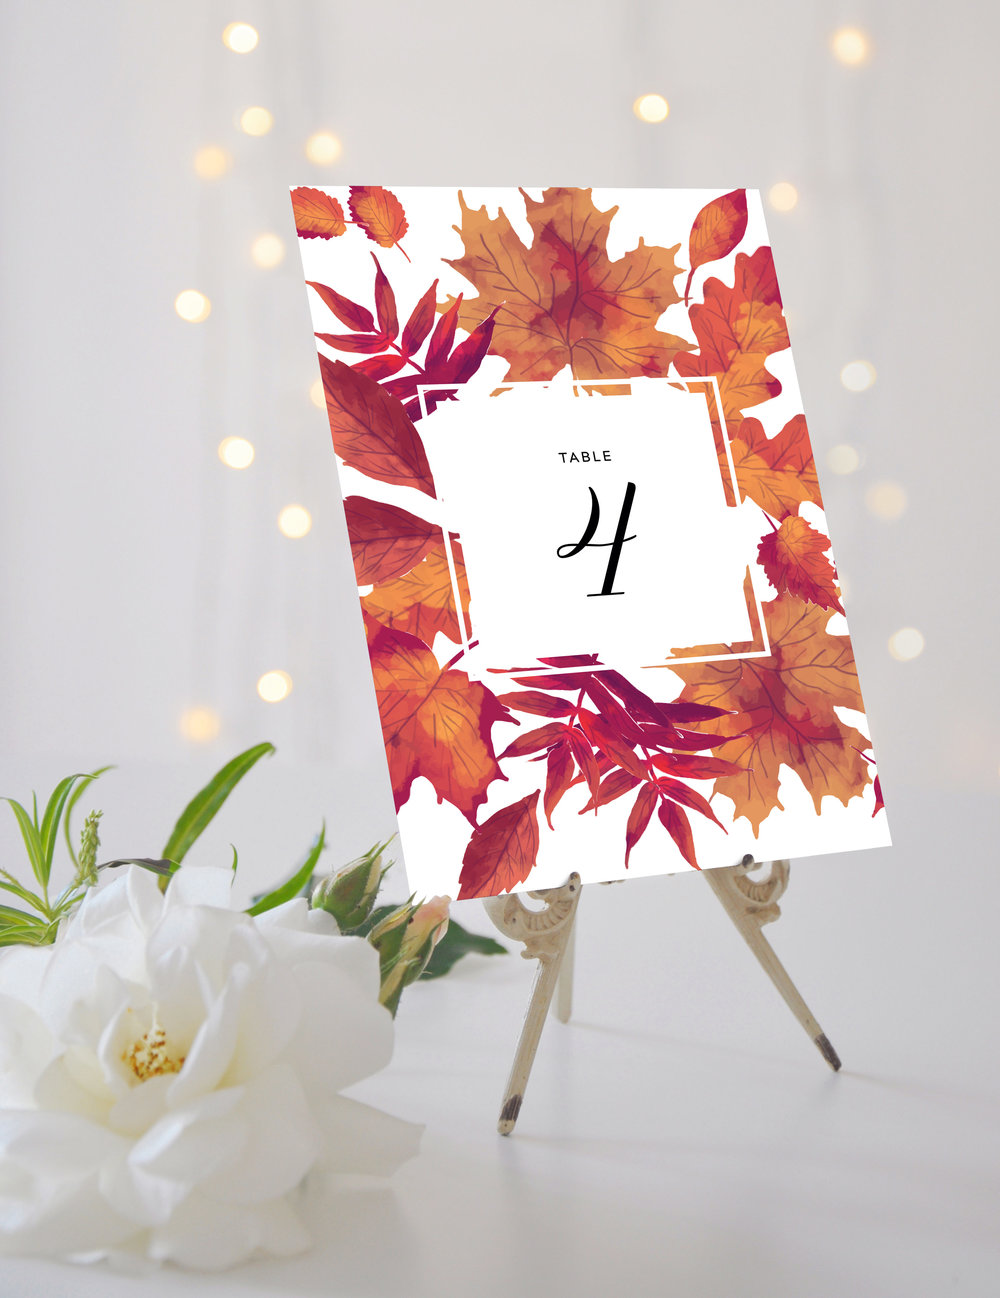 Table Name / Number - Our table cards are printed in a large A5 format and double-sided, so guests always know where they need to take their seat. You can opt for either standard numbering or creating naming; it's entirely up to you.